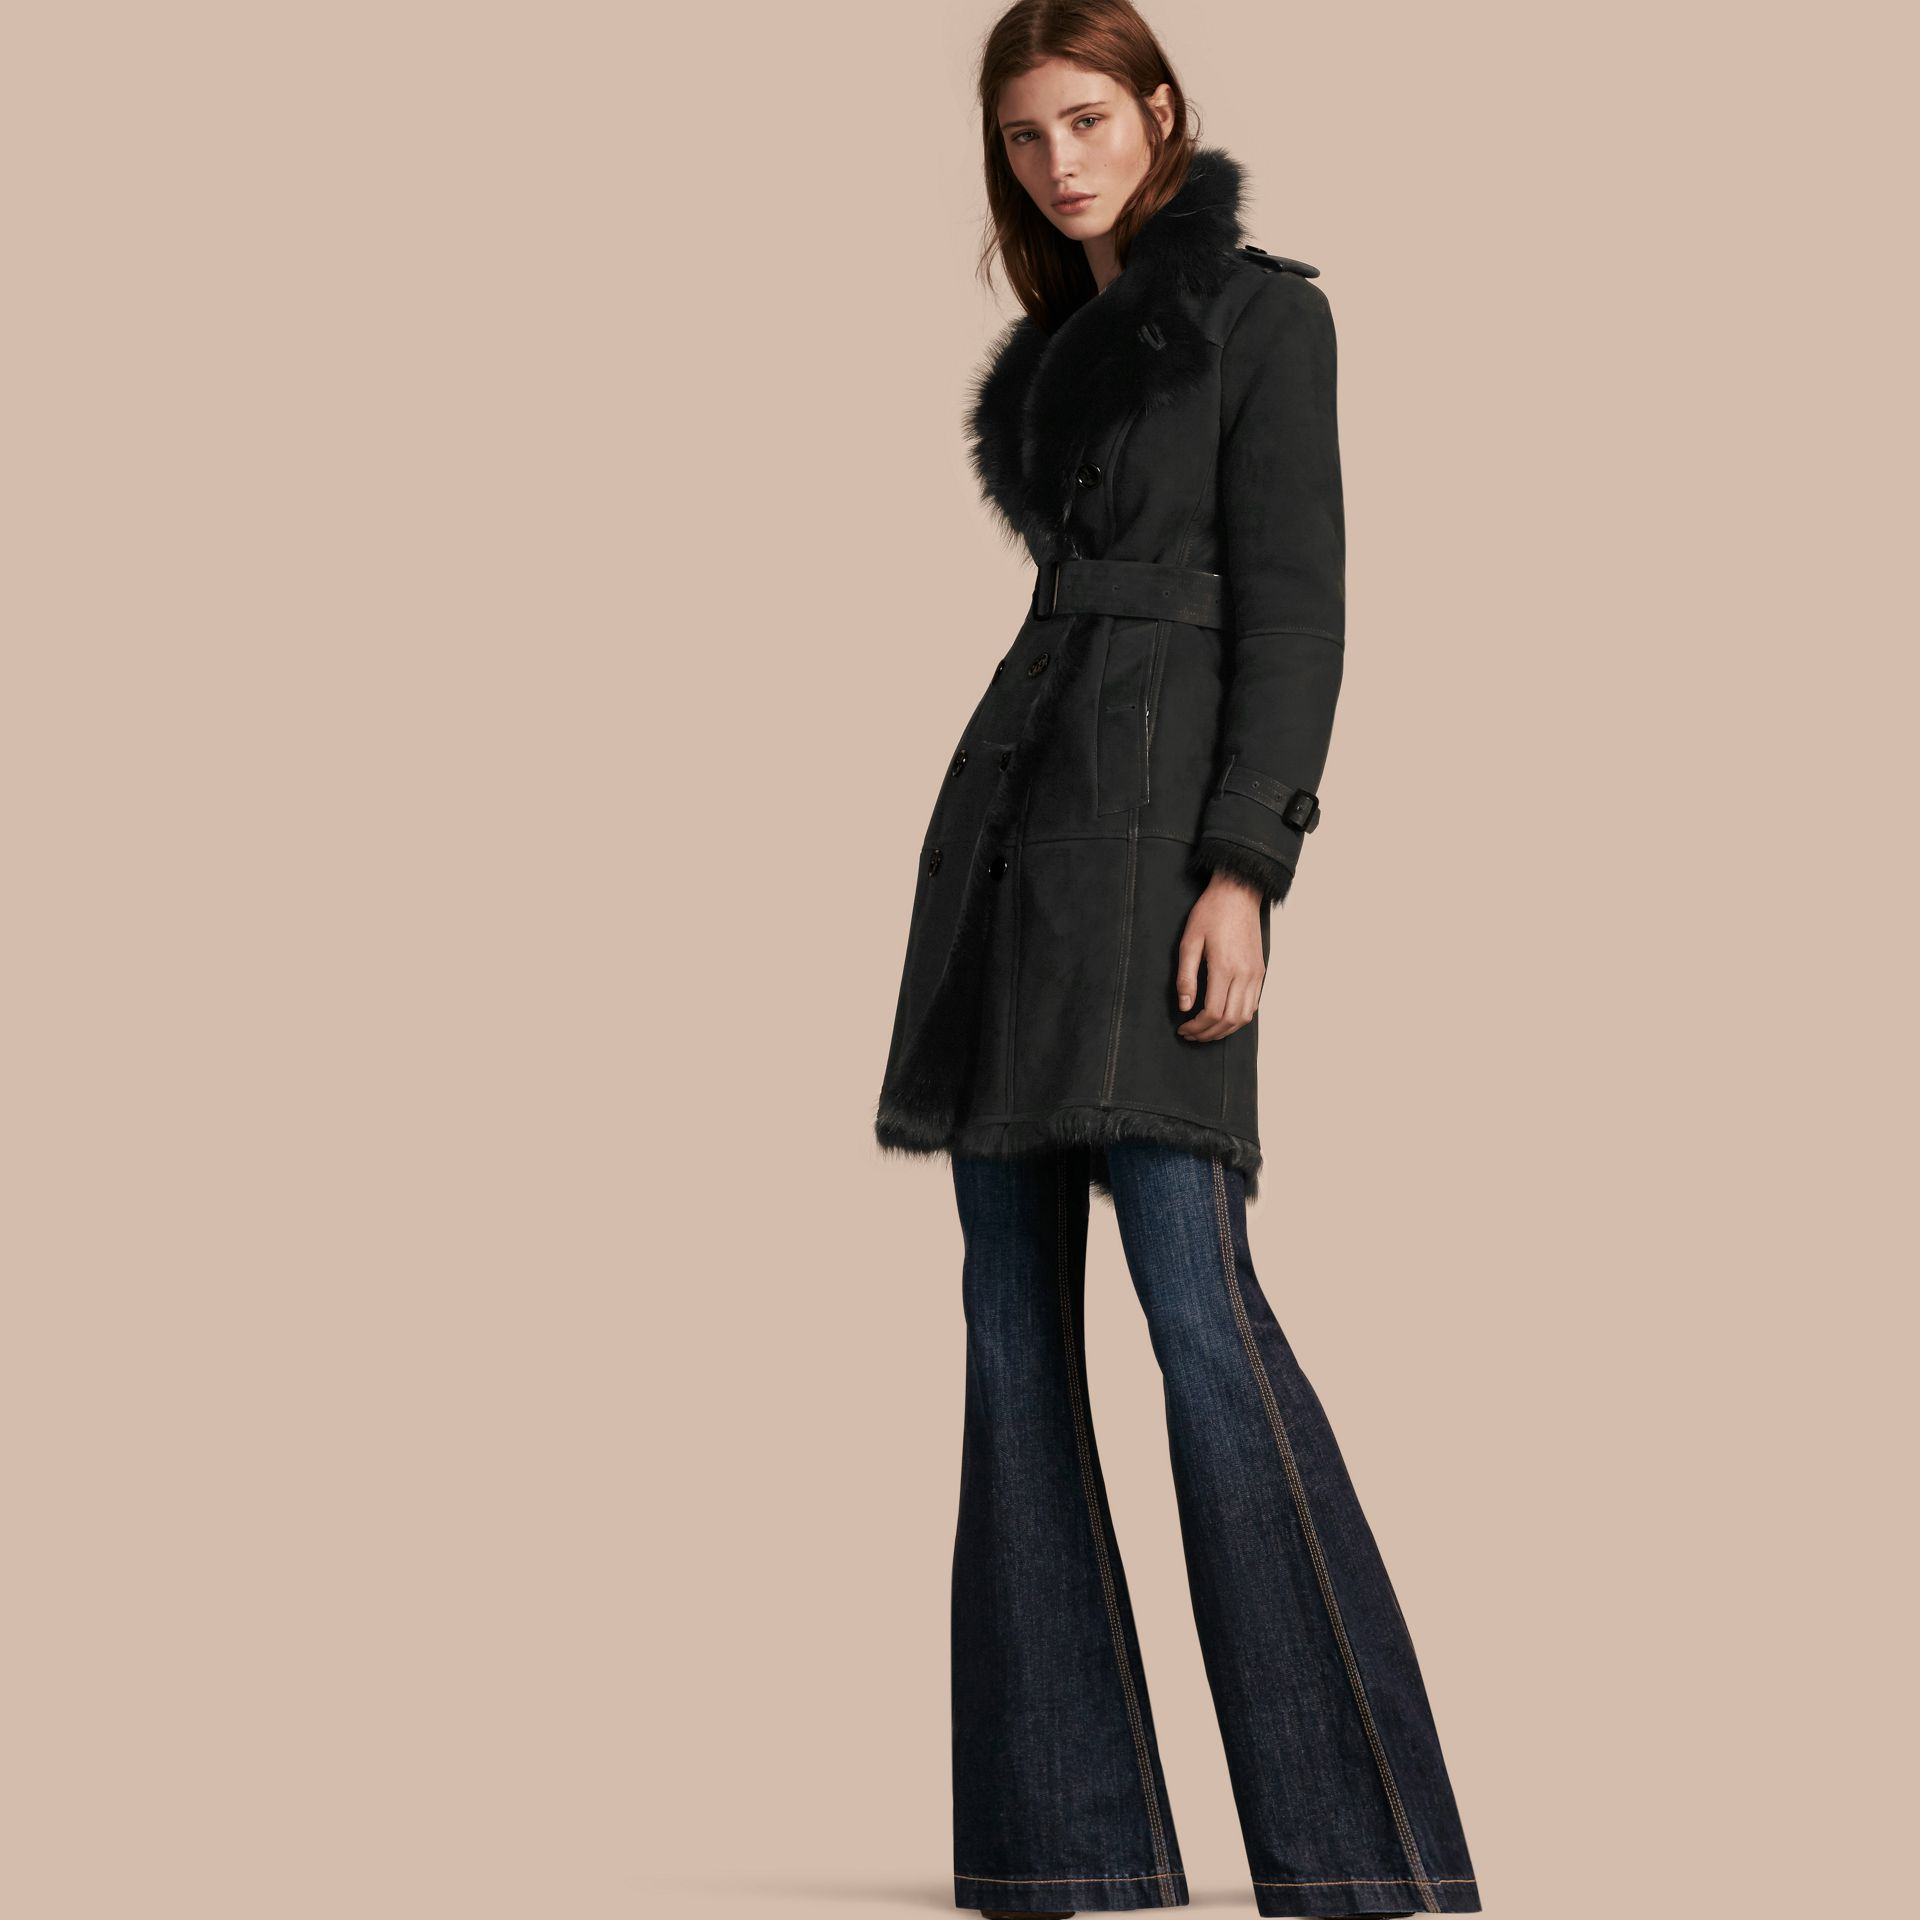 Shearling Trench Coat in Black - Women | Burberry - gallery image 1